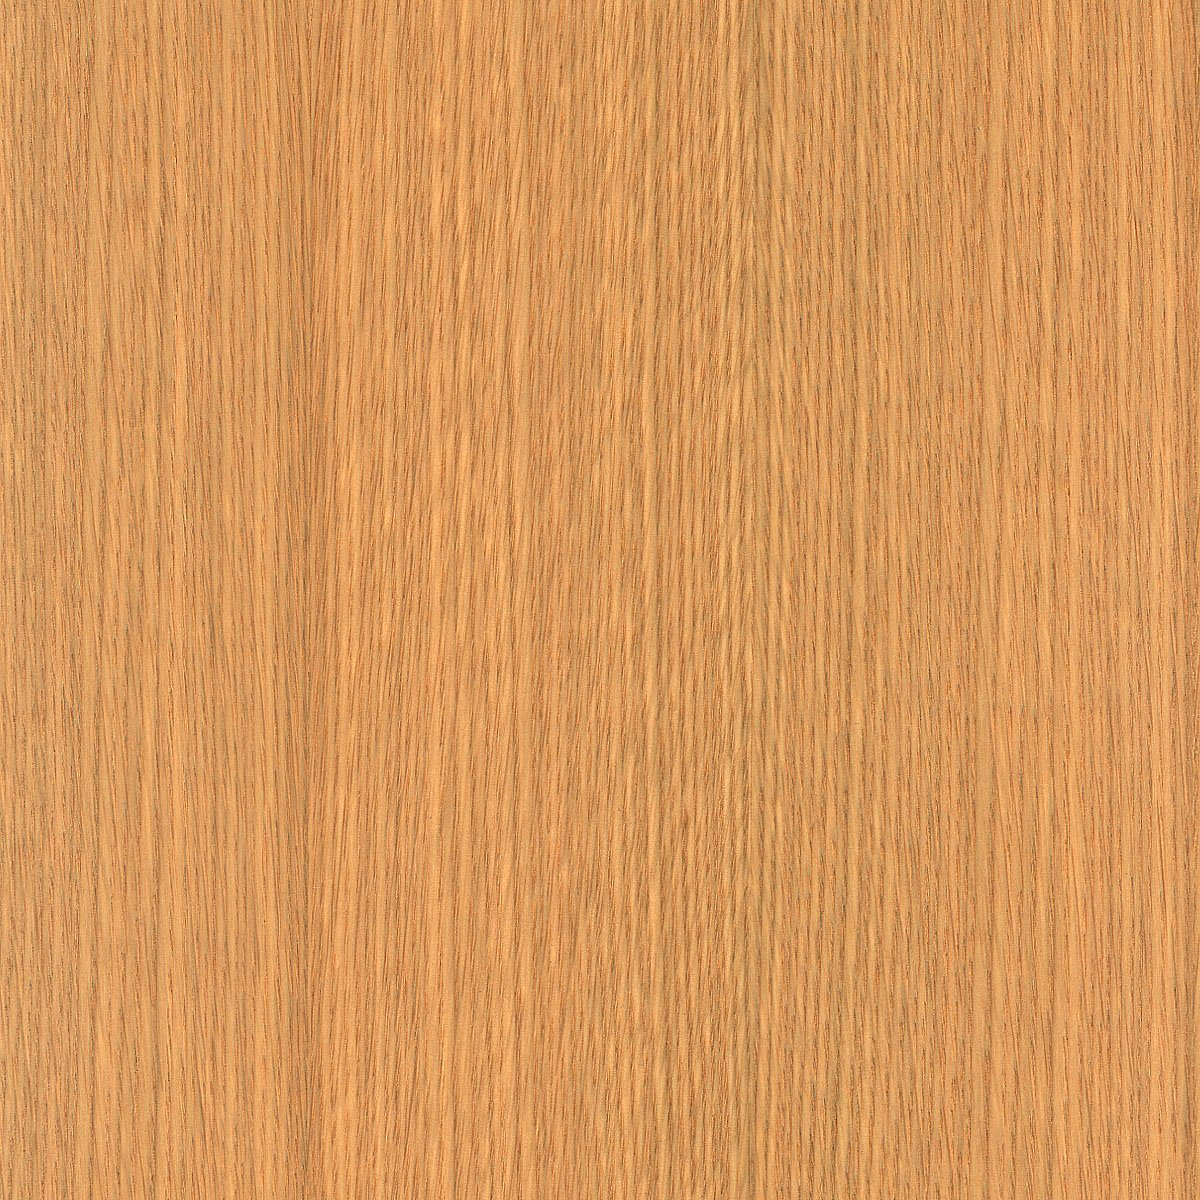 White Oak Wood Veneer Rift Cut 24x96 10 mil(Paperback) Sheet by Wood-All